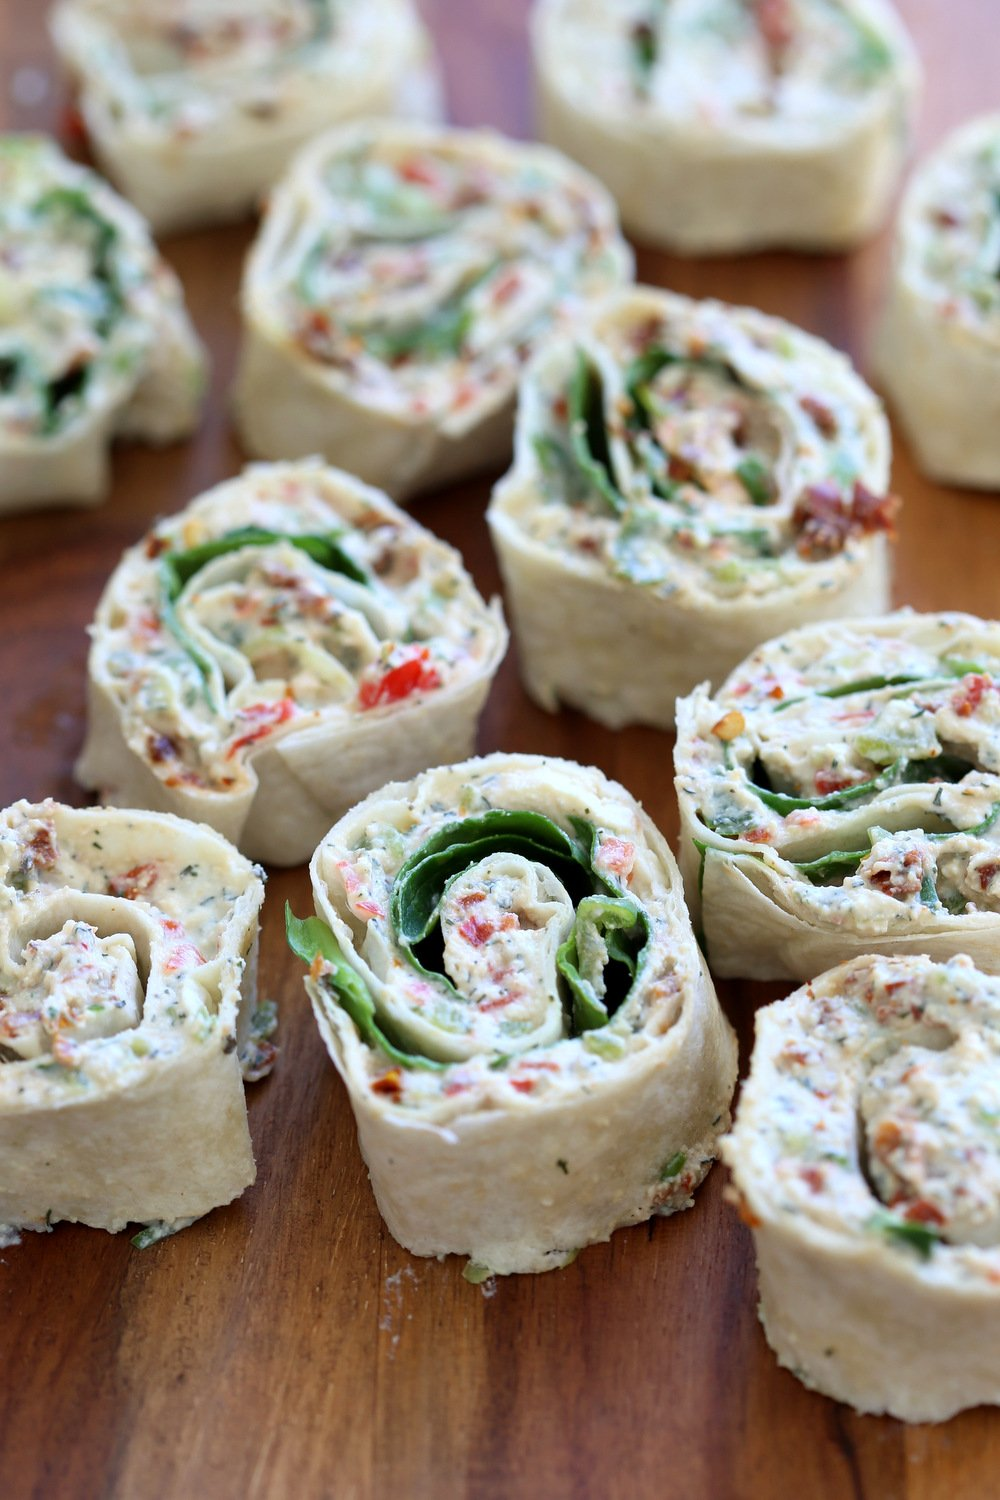 Vegan Tortilla Roll Ups Recipe. Veggies and Sun-dried tomato are mixed in Tofu Herb Cream Cheese androlled to make Easy Tortilla pinwheels. Vegan Nutfree Recipe, can be gluten-free soy-free #Oilfree #Daoryfree #Vegan #veganricha #tortillarollups #sundriedtotmatopinwheels